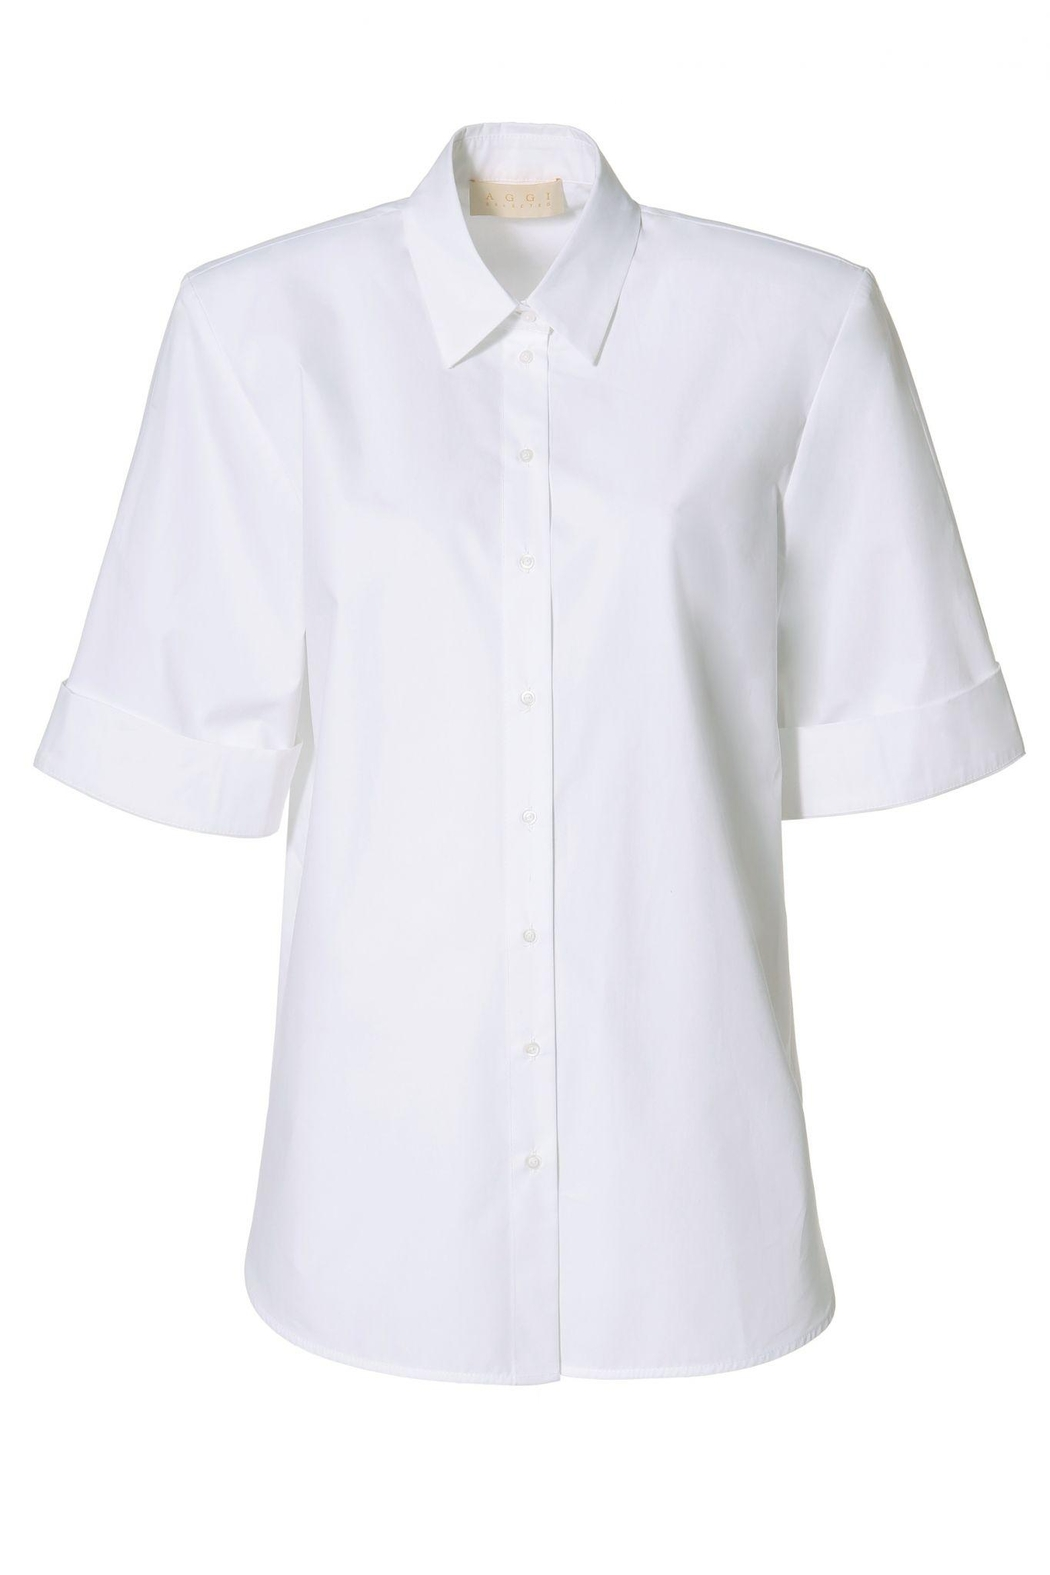 AGGI Shirt Demi Simple White - Front Full Image